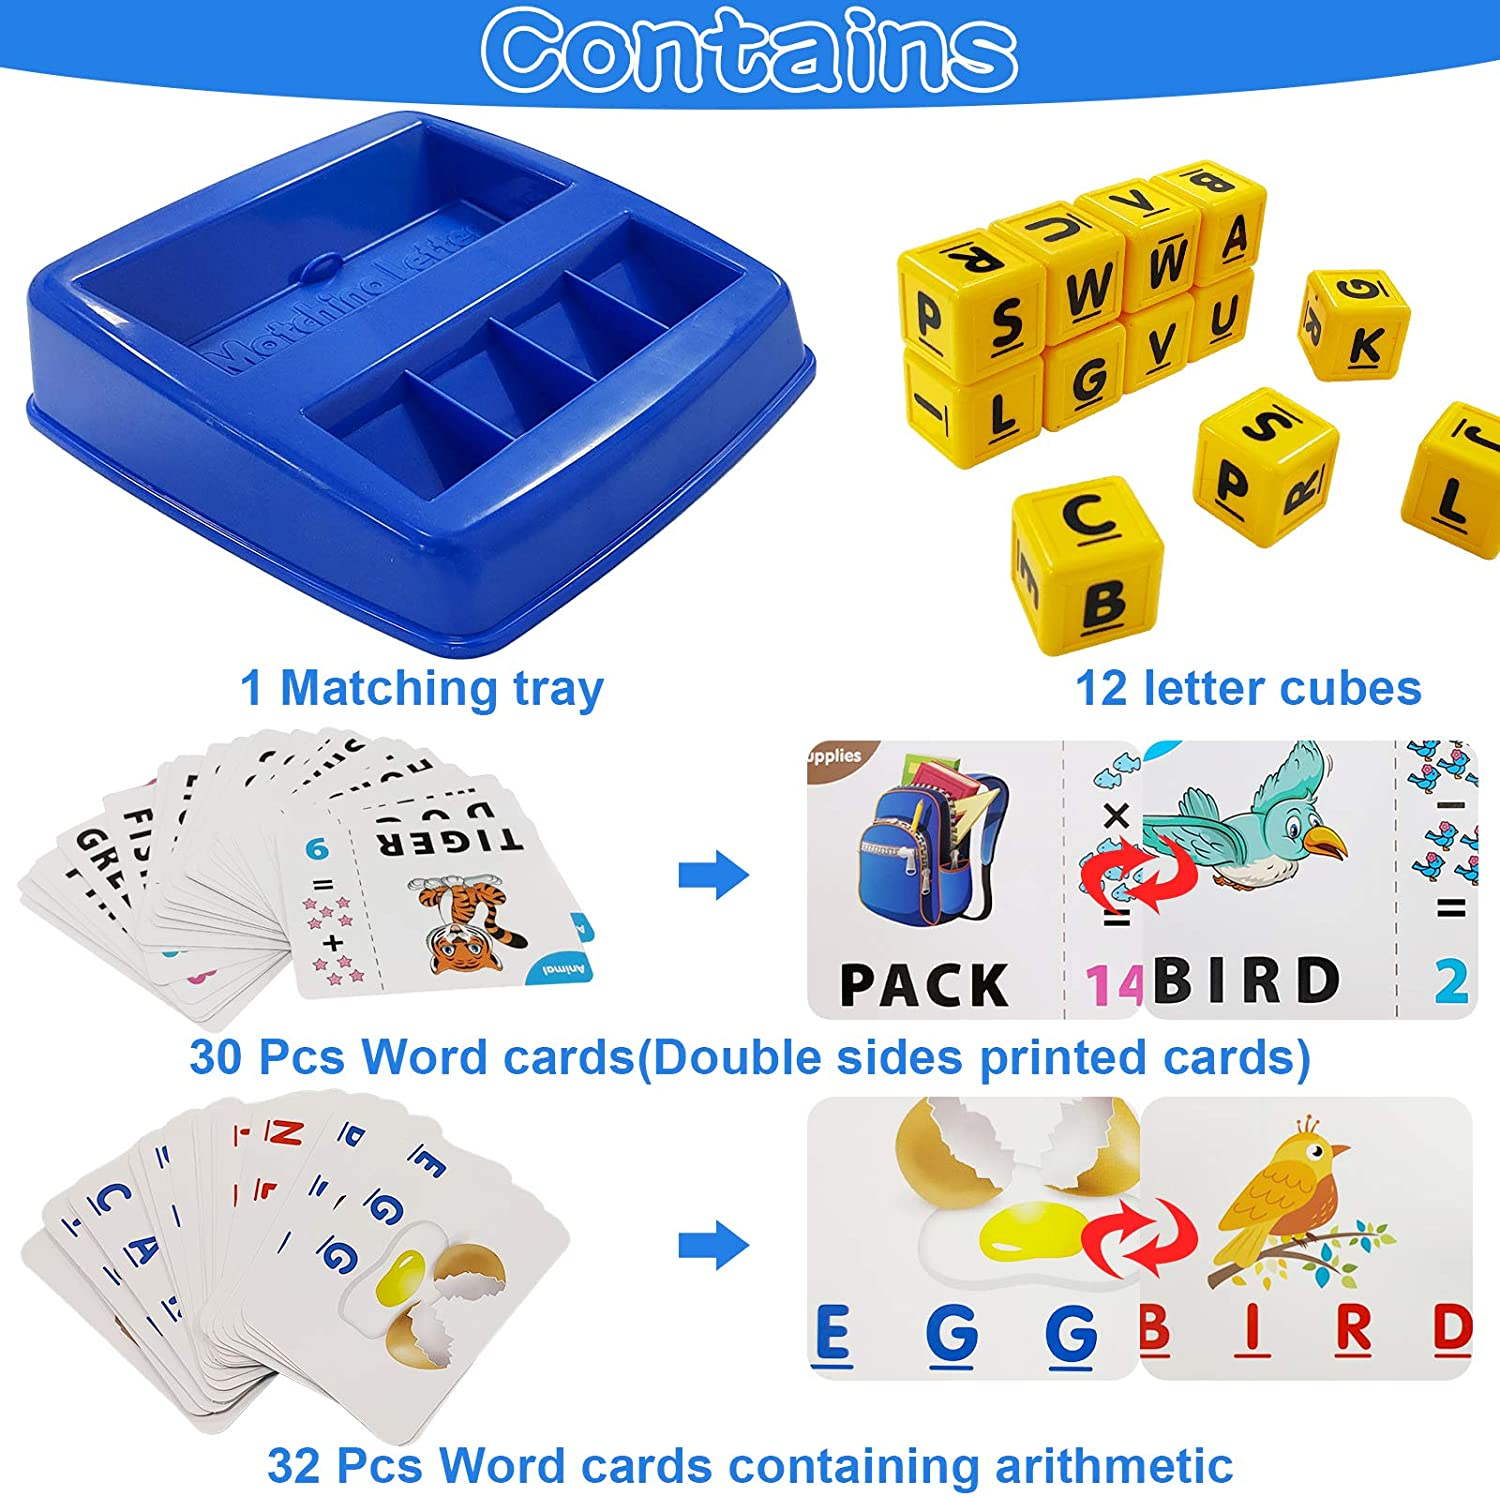 Number and Color Recognition Alphabet Reading Spelling Words and Objects Matching Letter Game Educational Preschool Learning Toys Spelling Games for Kids Preschool Language Educational Toys